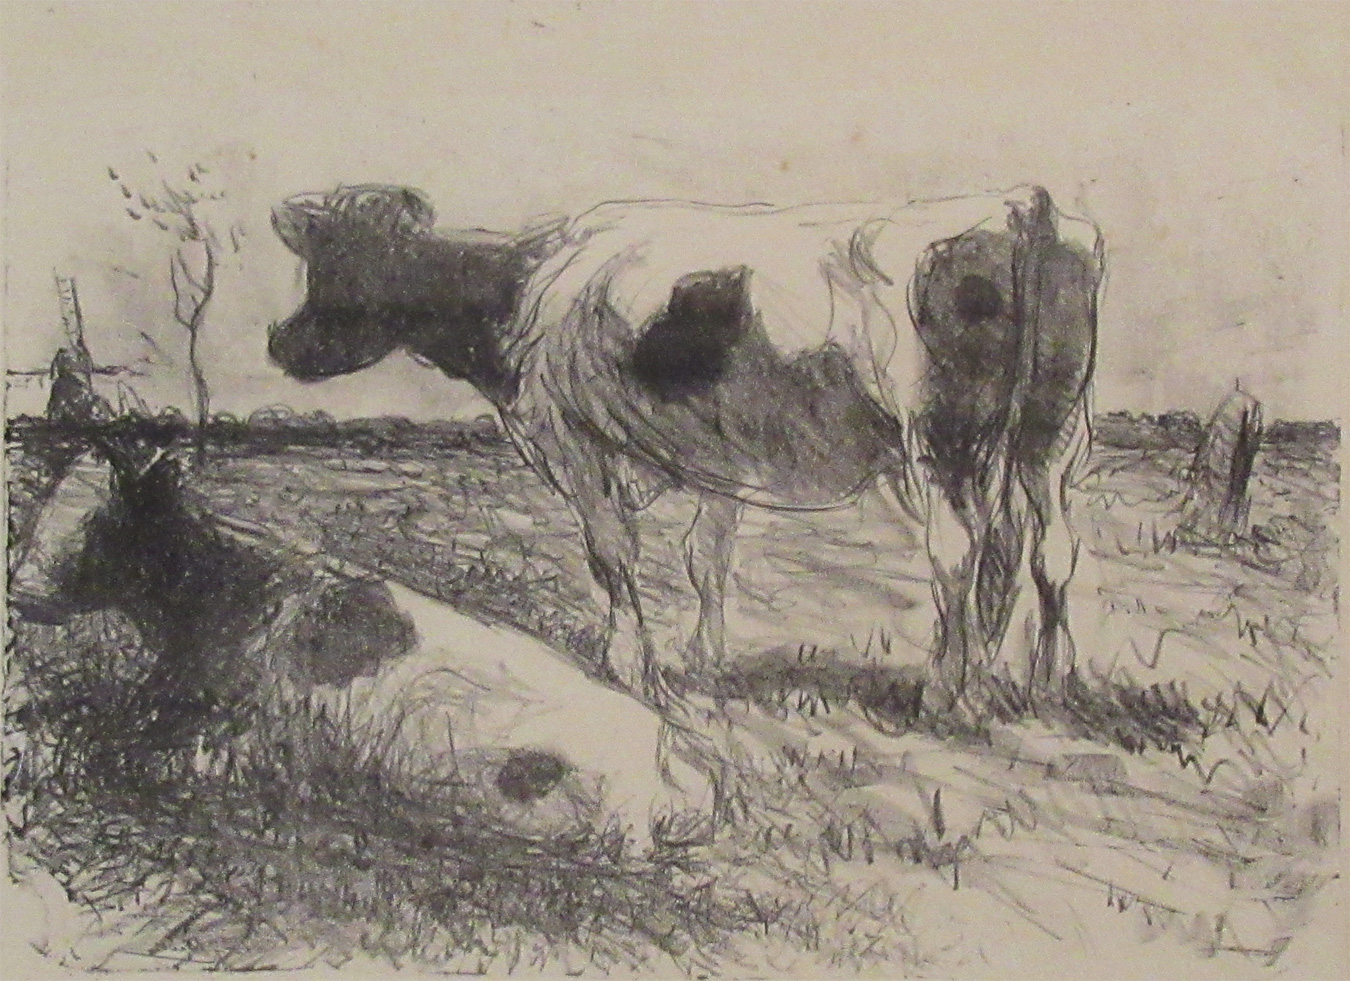 Two Cows, Low Countries, circa 1910 by  Harry Becker (1865-1928)